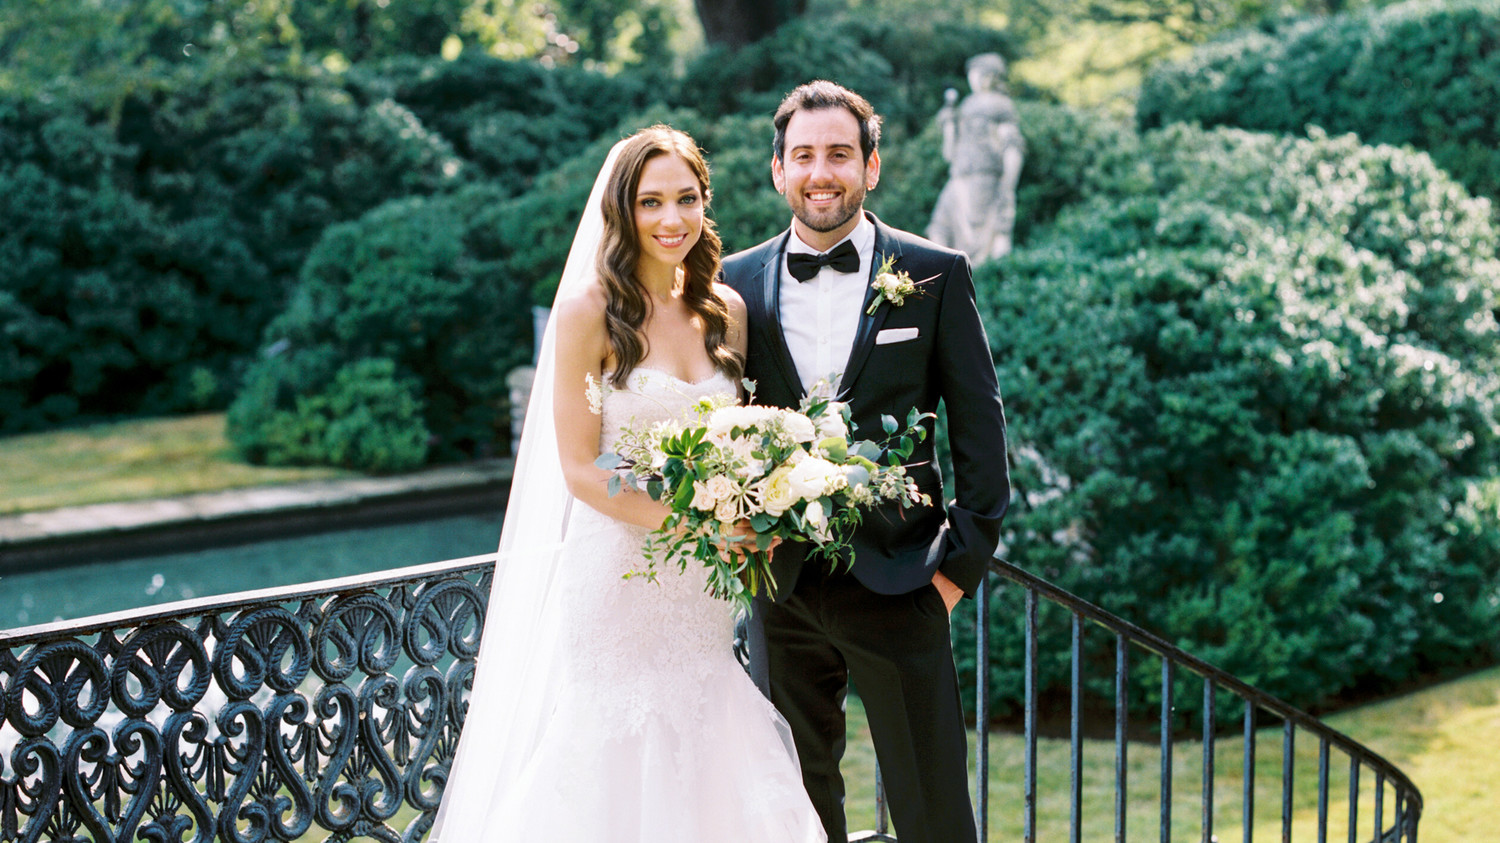 Martha Stewart Weddings: Jackie And Ross's Elegant Nashville Wedding With A